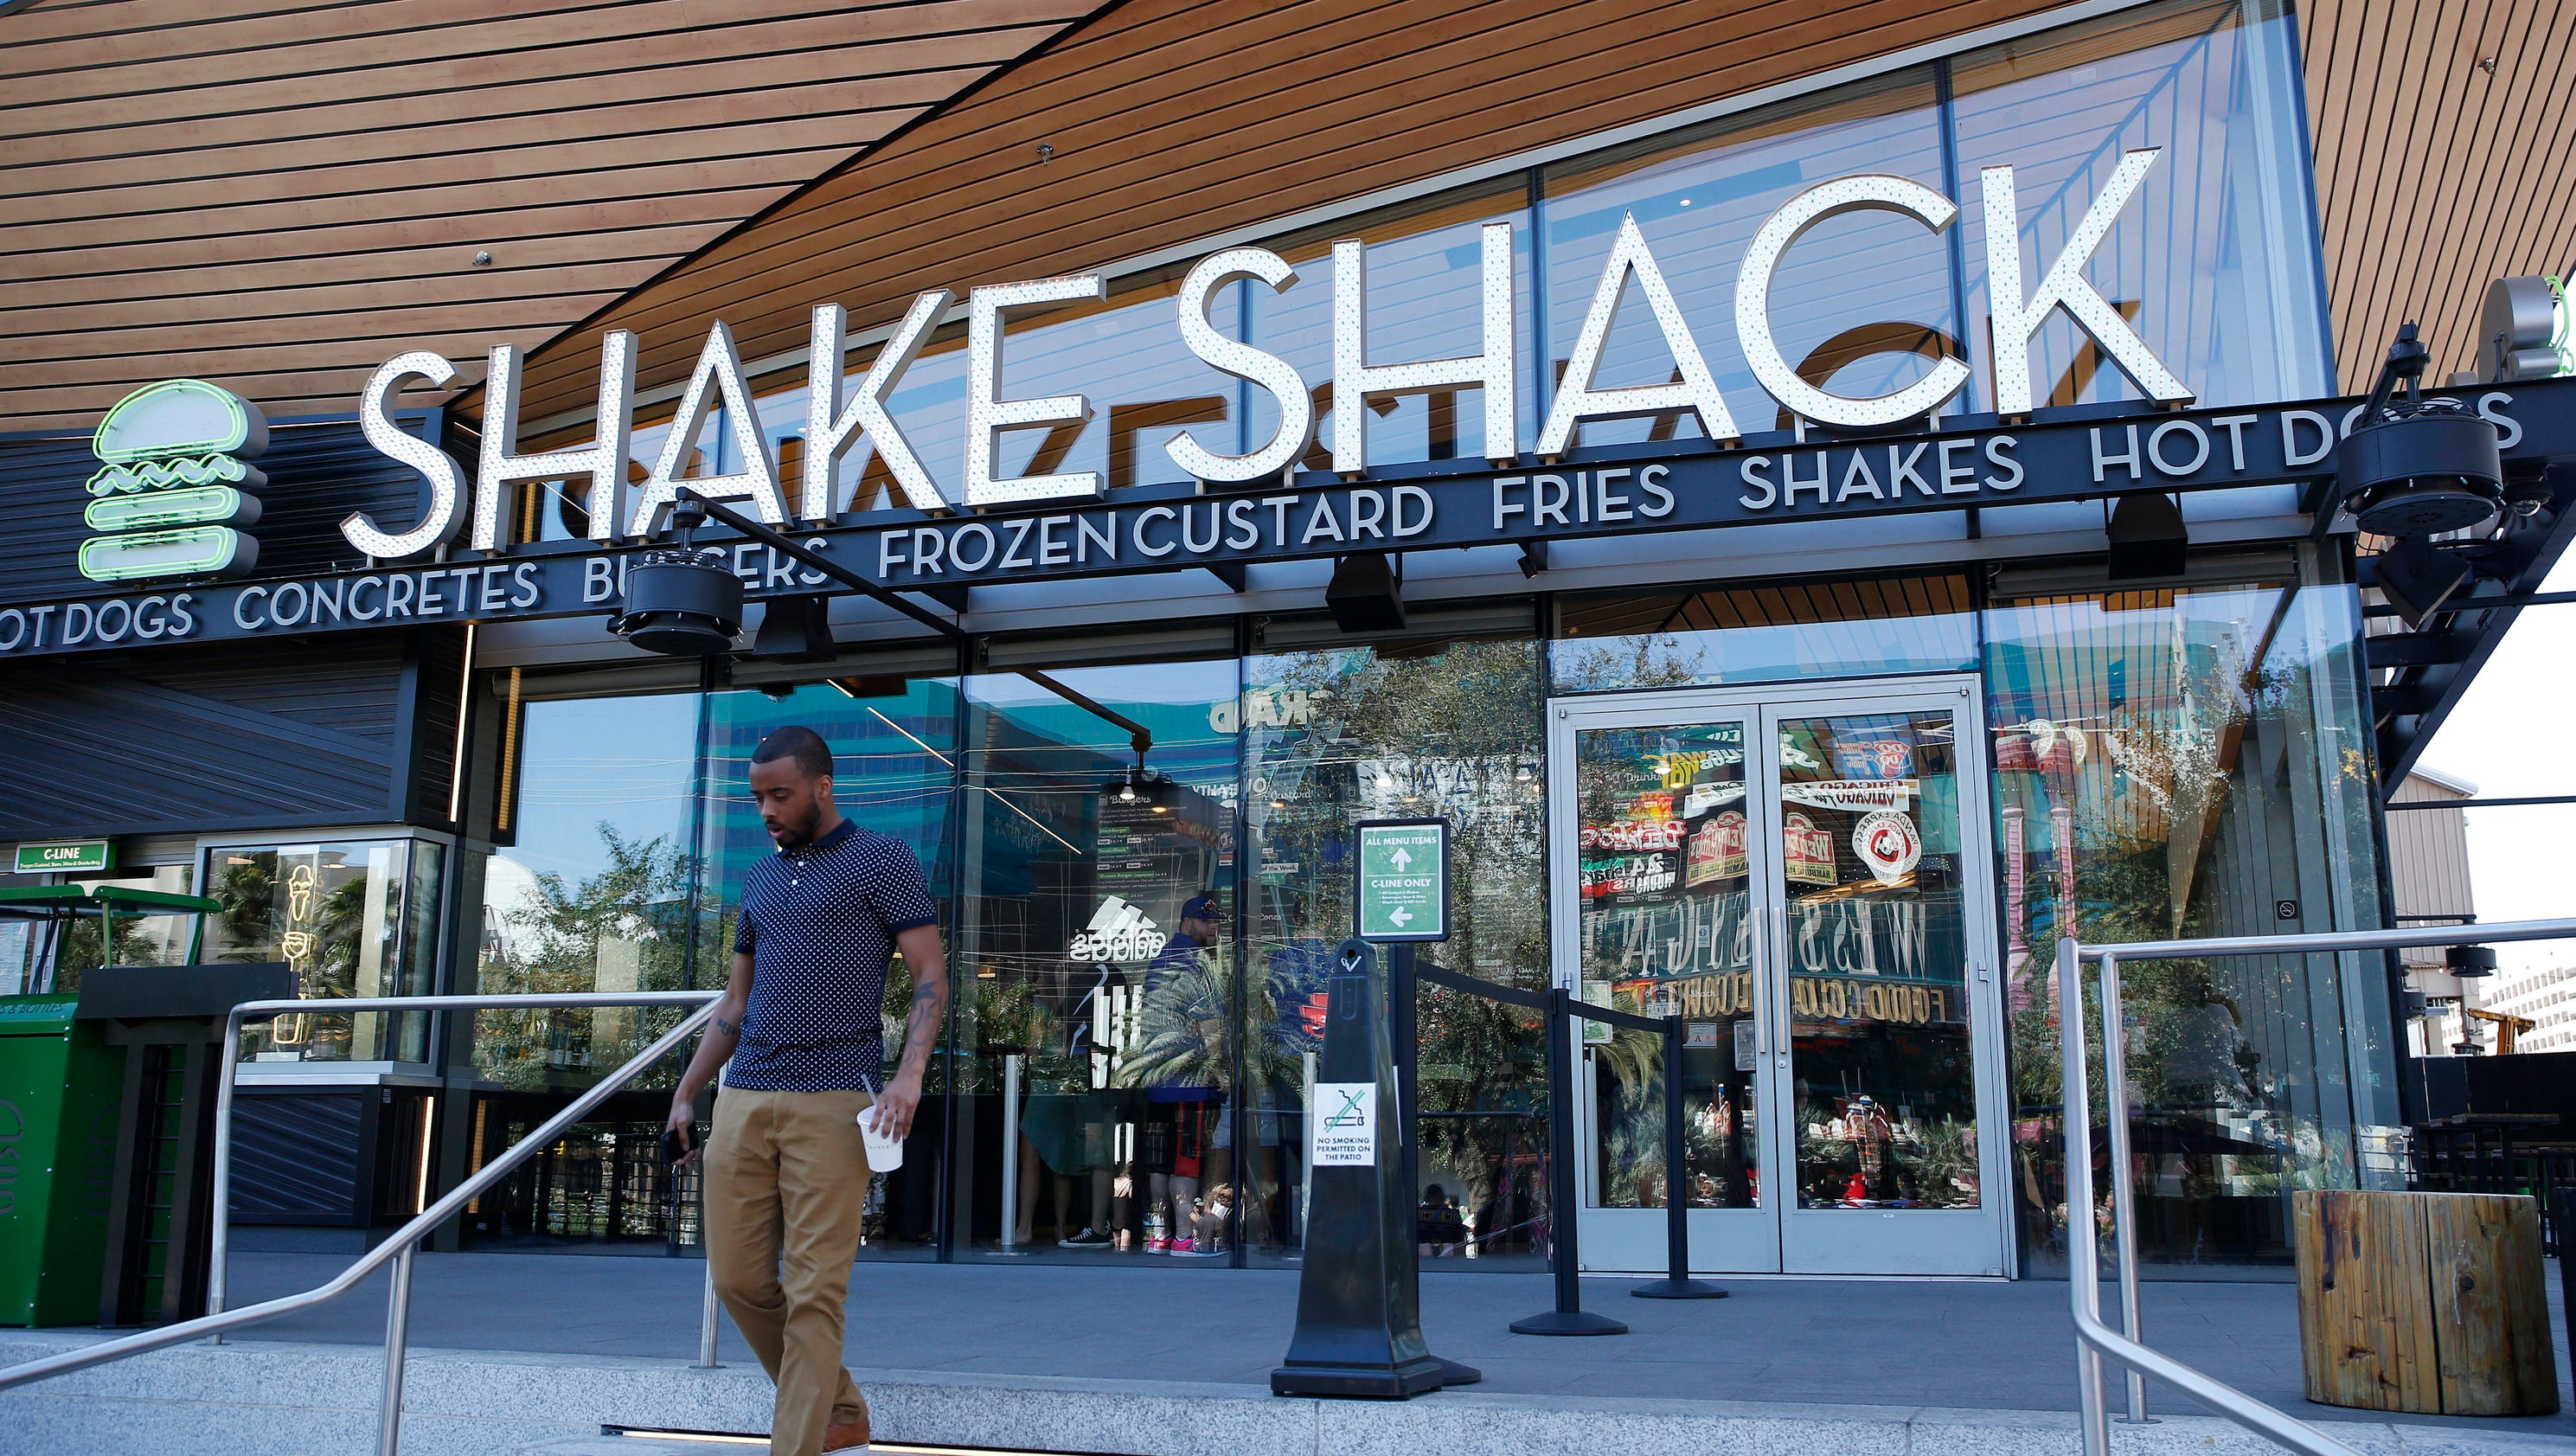 100th Shake Shack opening means free burgers